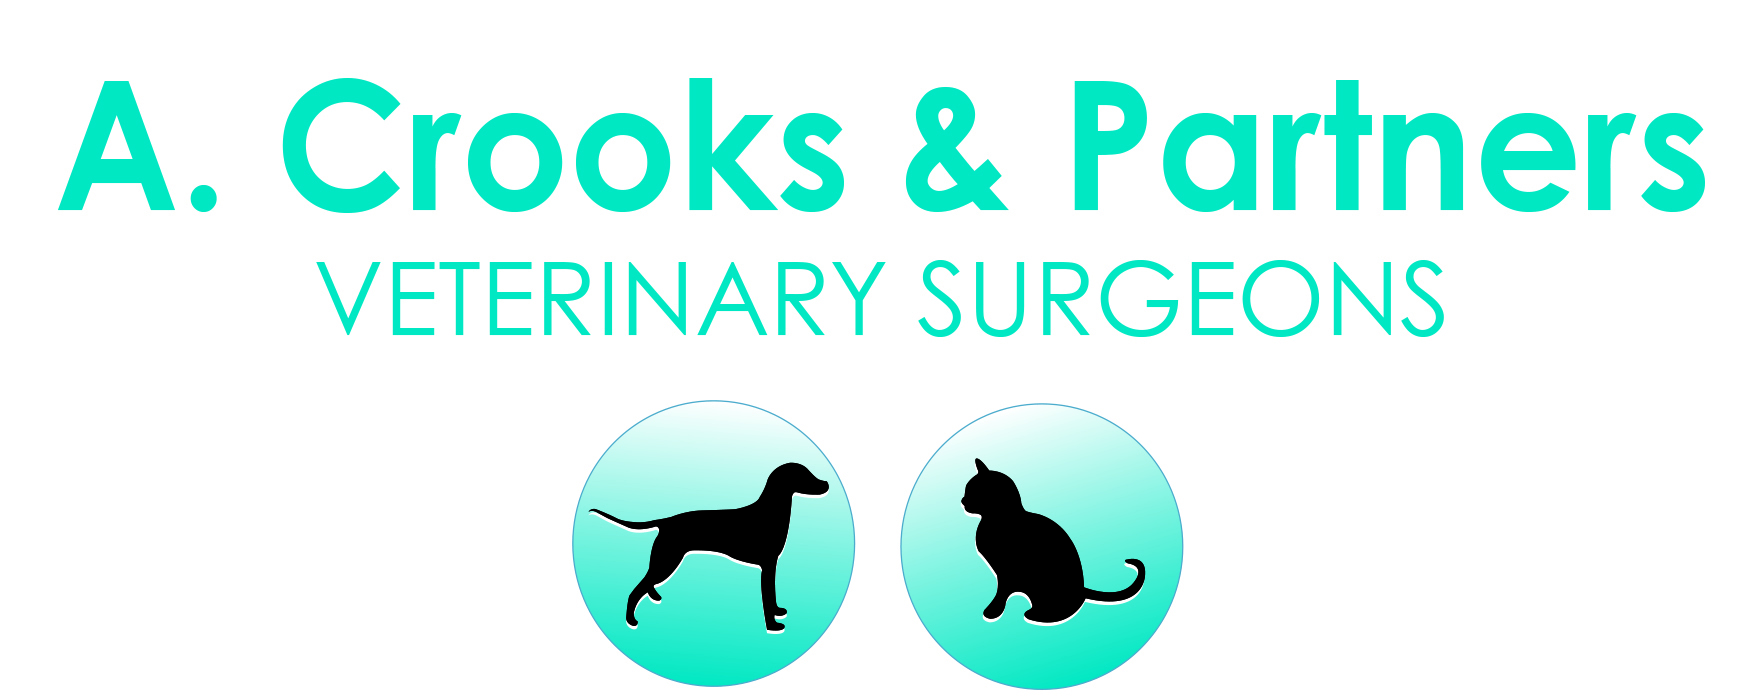 A Crooks & Partners Veterinary Surgeons